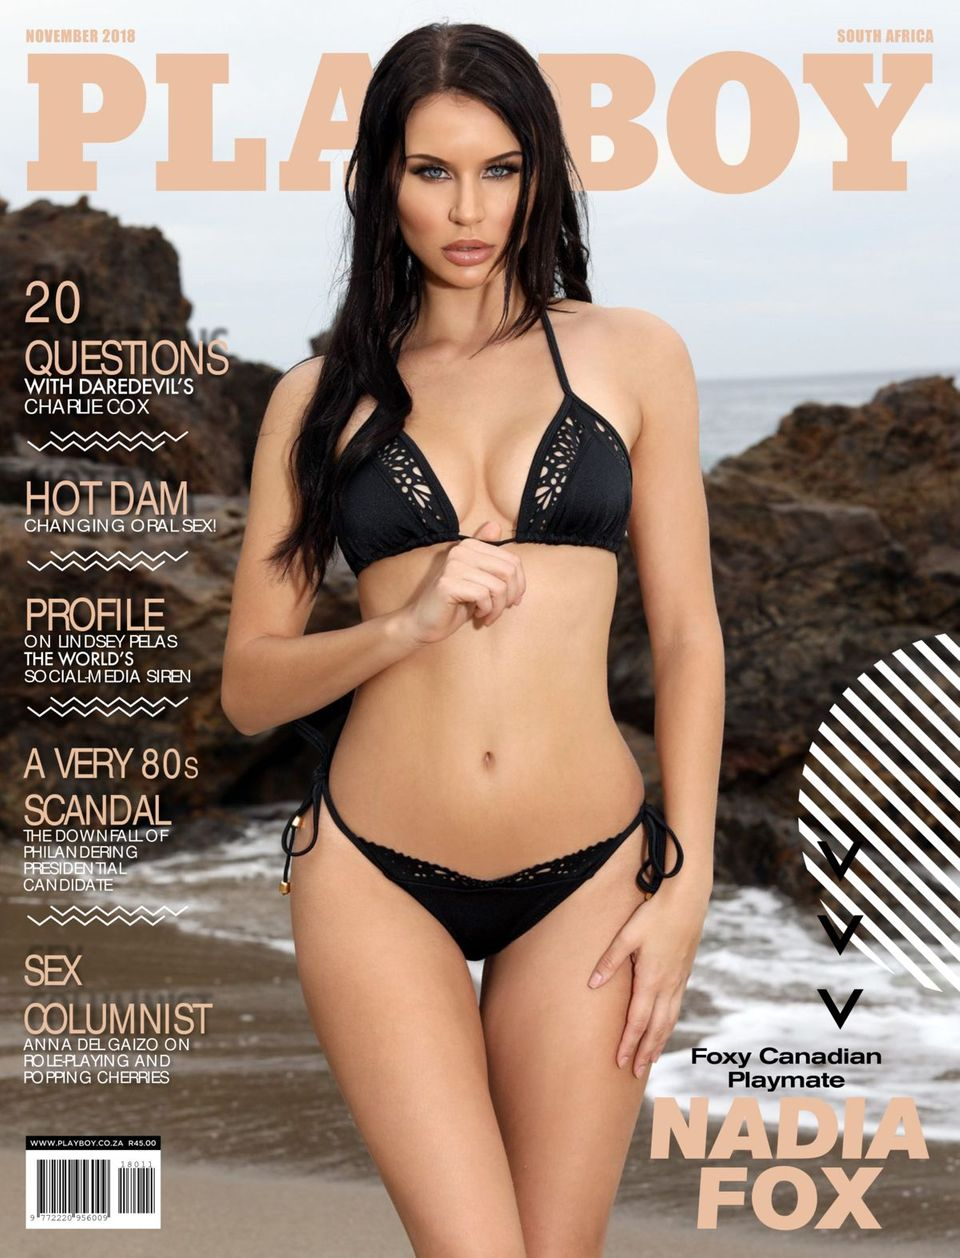 Playboy South Africa-November 2018 Magazine - Get your